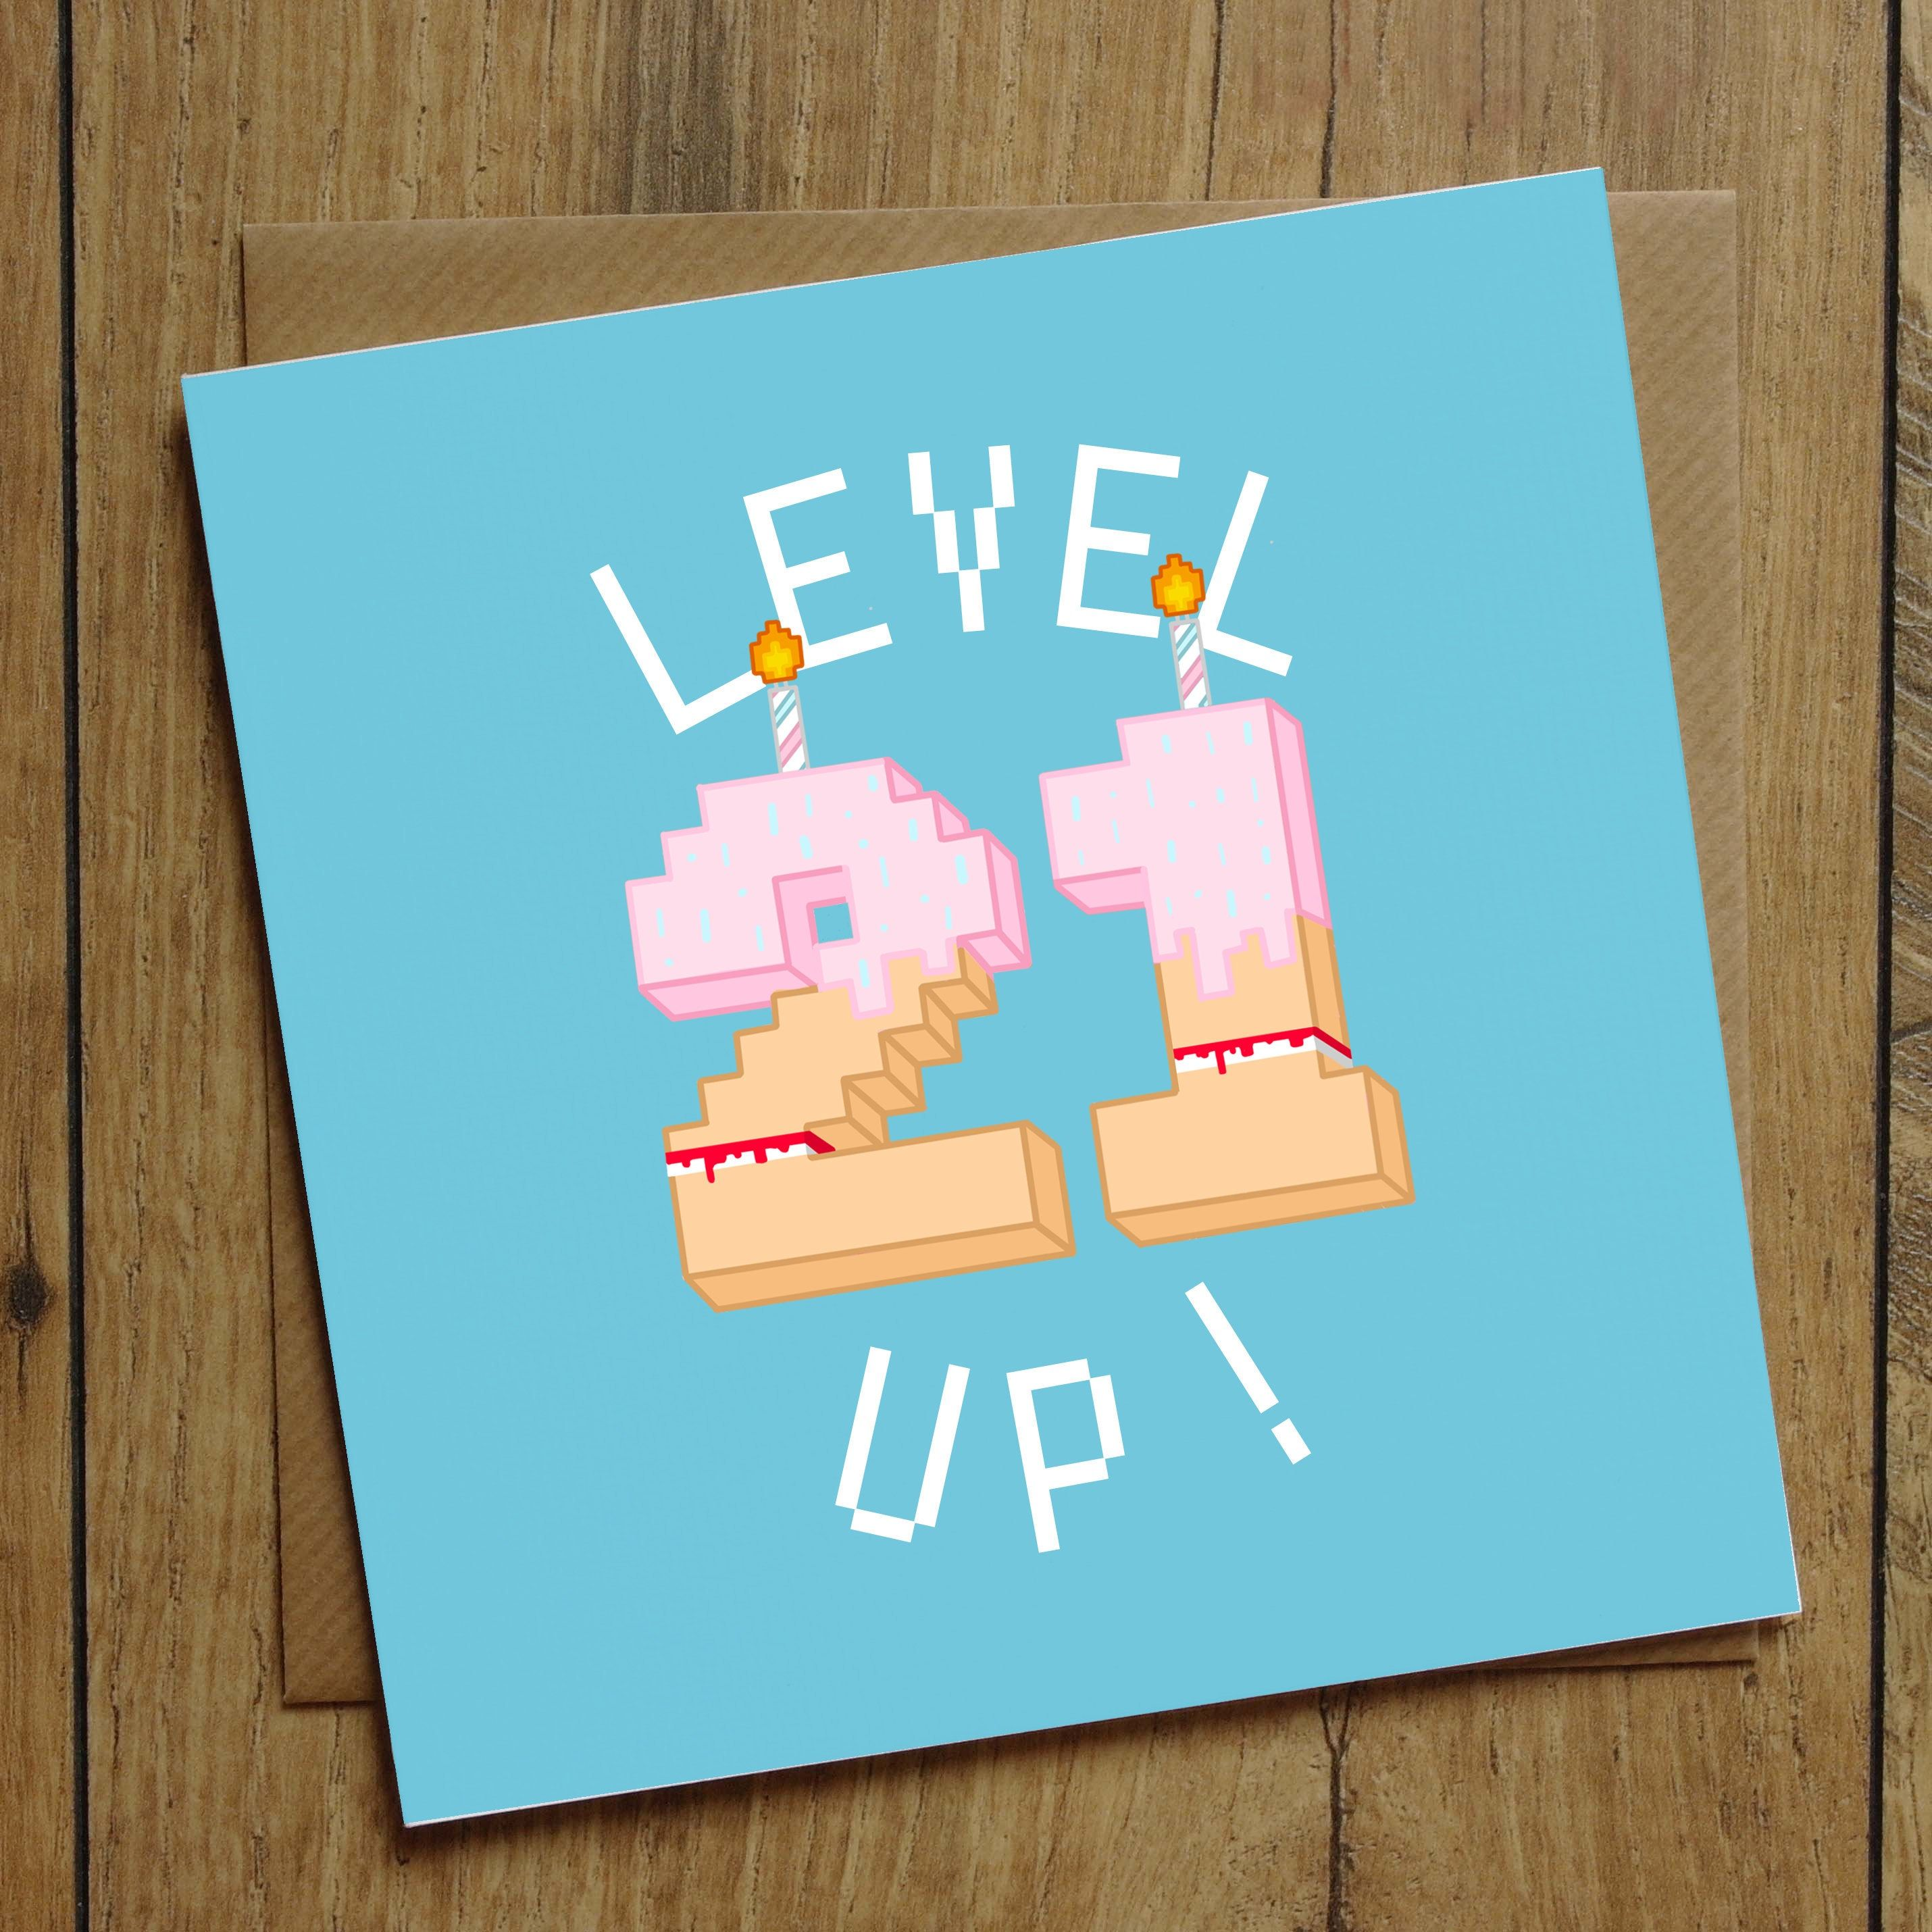 21st Birthday Card Level Up Card Birthday Number Card Etsy 21st Birthday Cards Birthday Cards 30th Birthday Cards